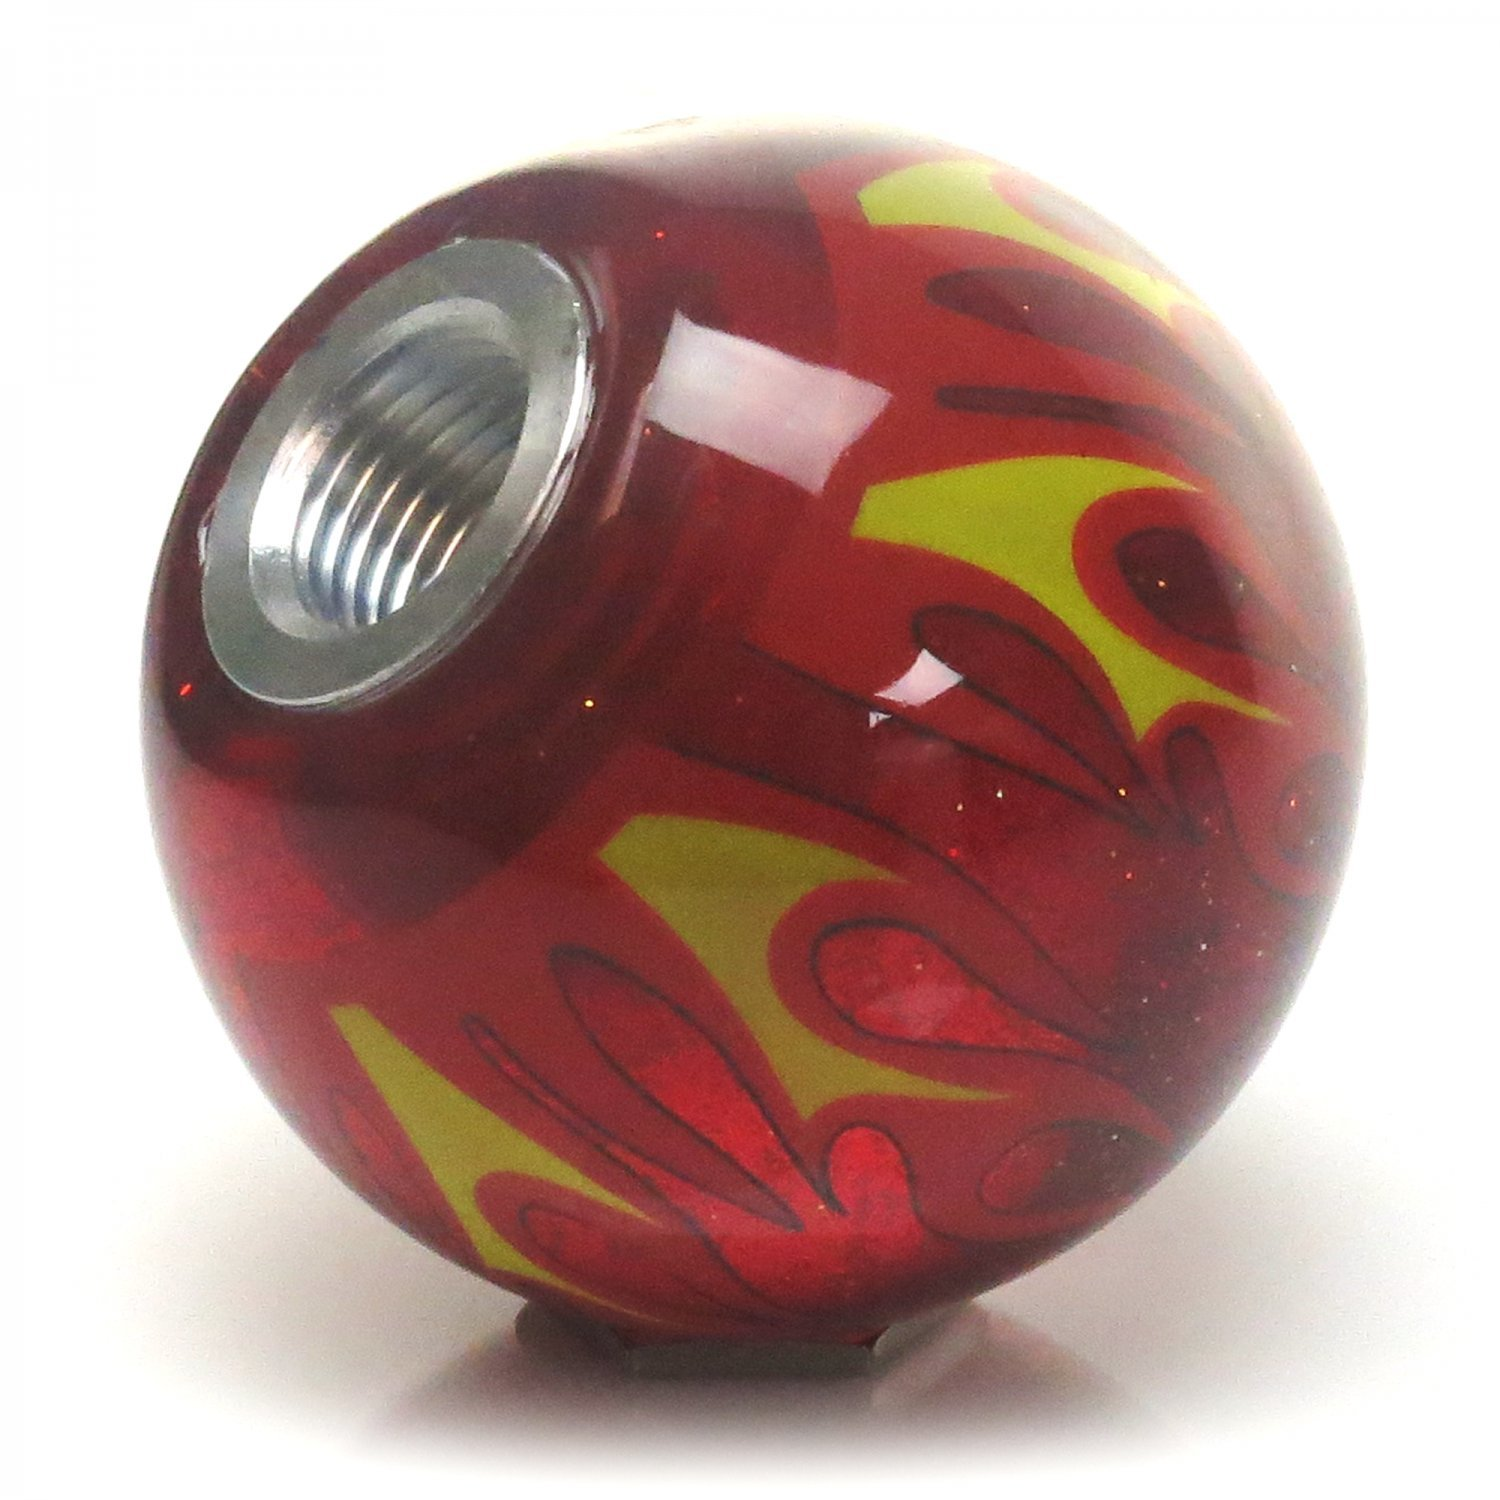 Orange//Yellow Wakaba Leaf Shocker American Shifter 242250 Red Flame Metal Flake Shift Knob with M16 x 1.5 Insert